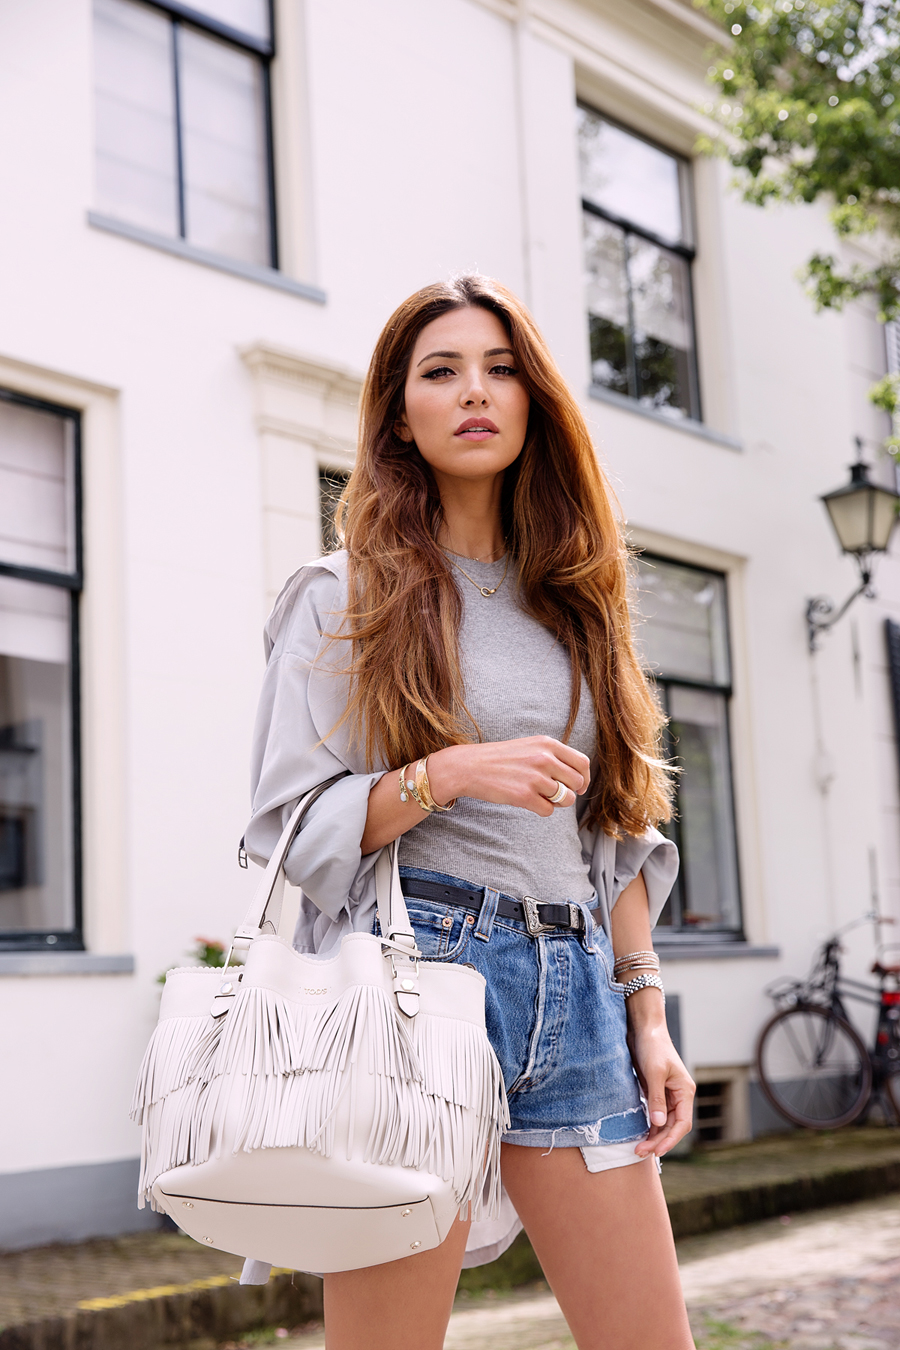 Come-Diventare-Fashion-Blogger-Negin-Mirsalehi